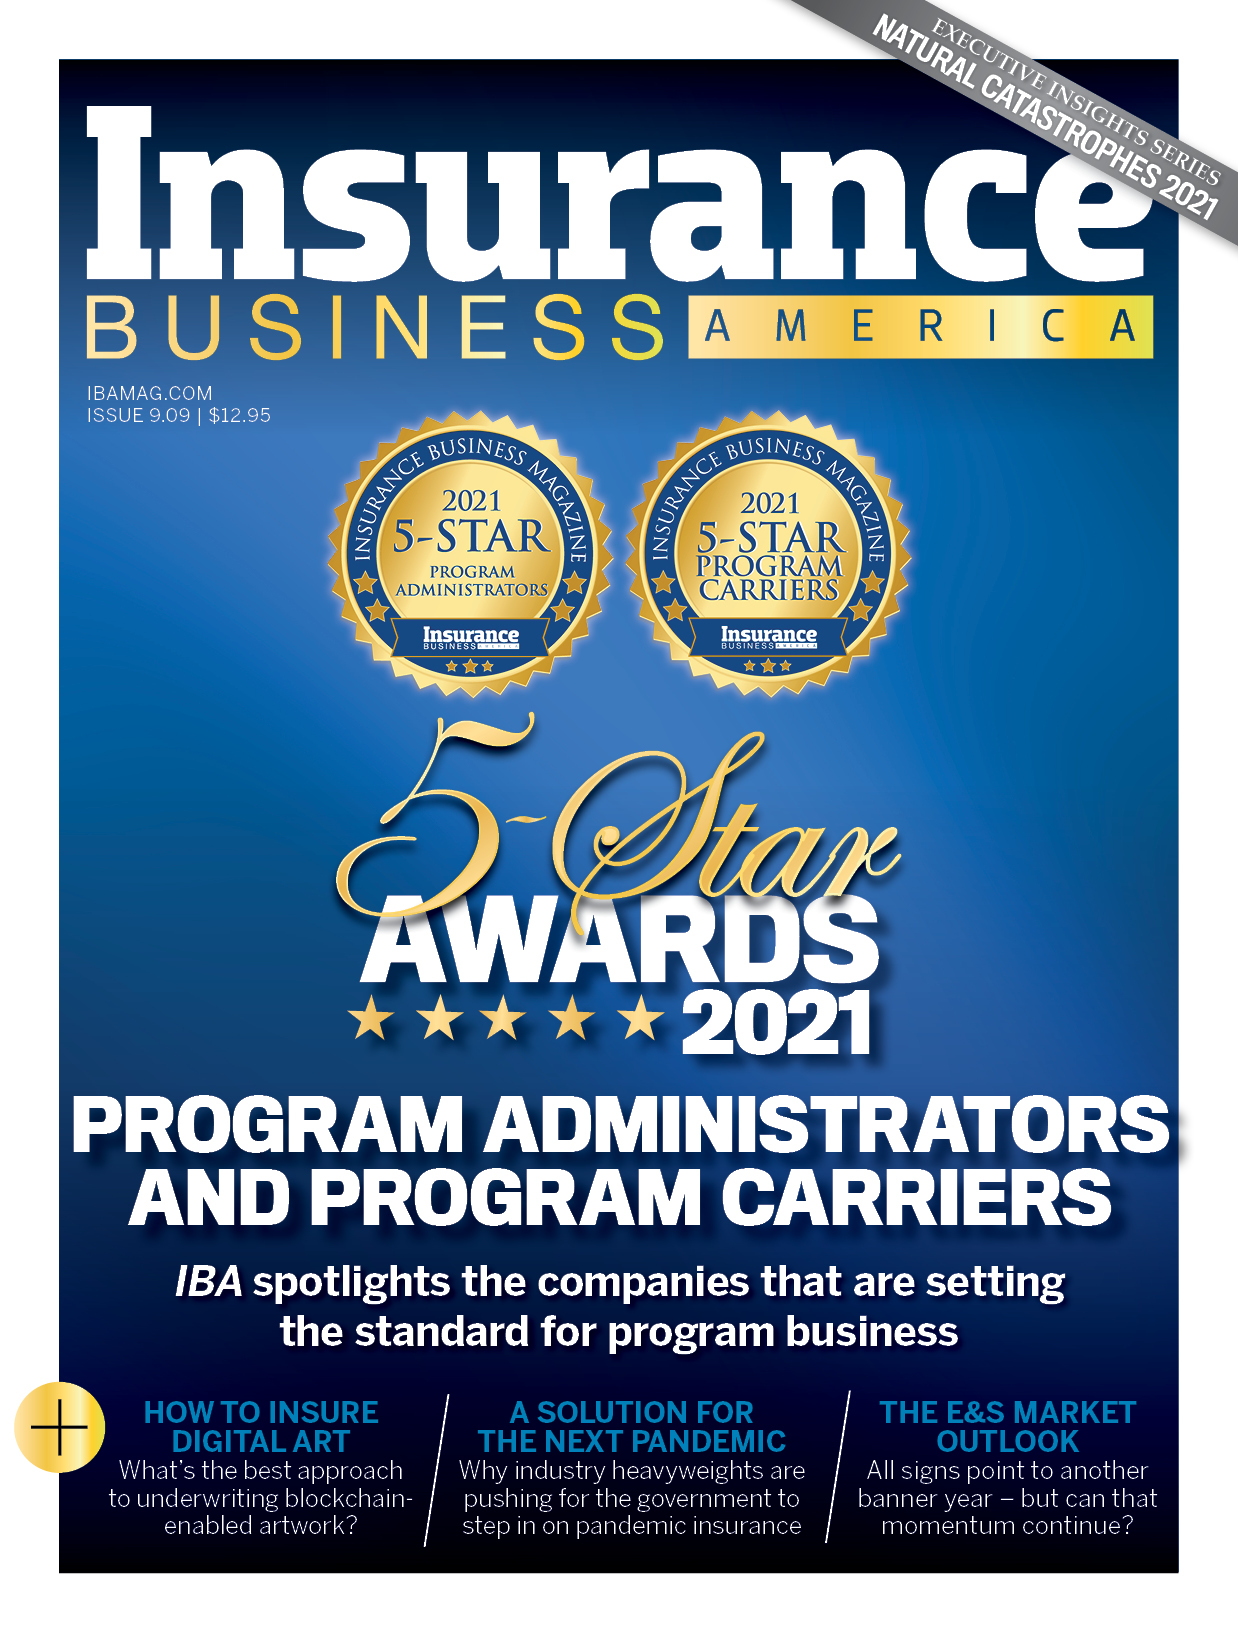 Insurance Business America issue 9.09